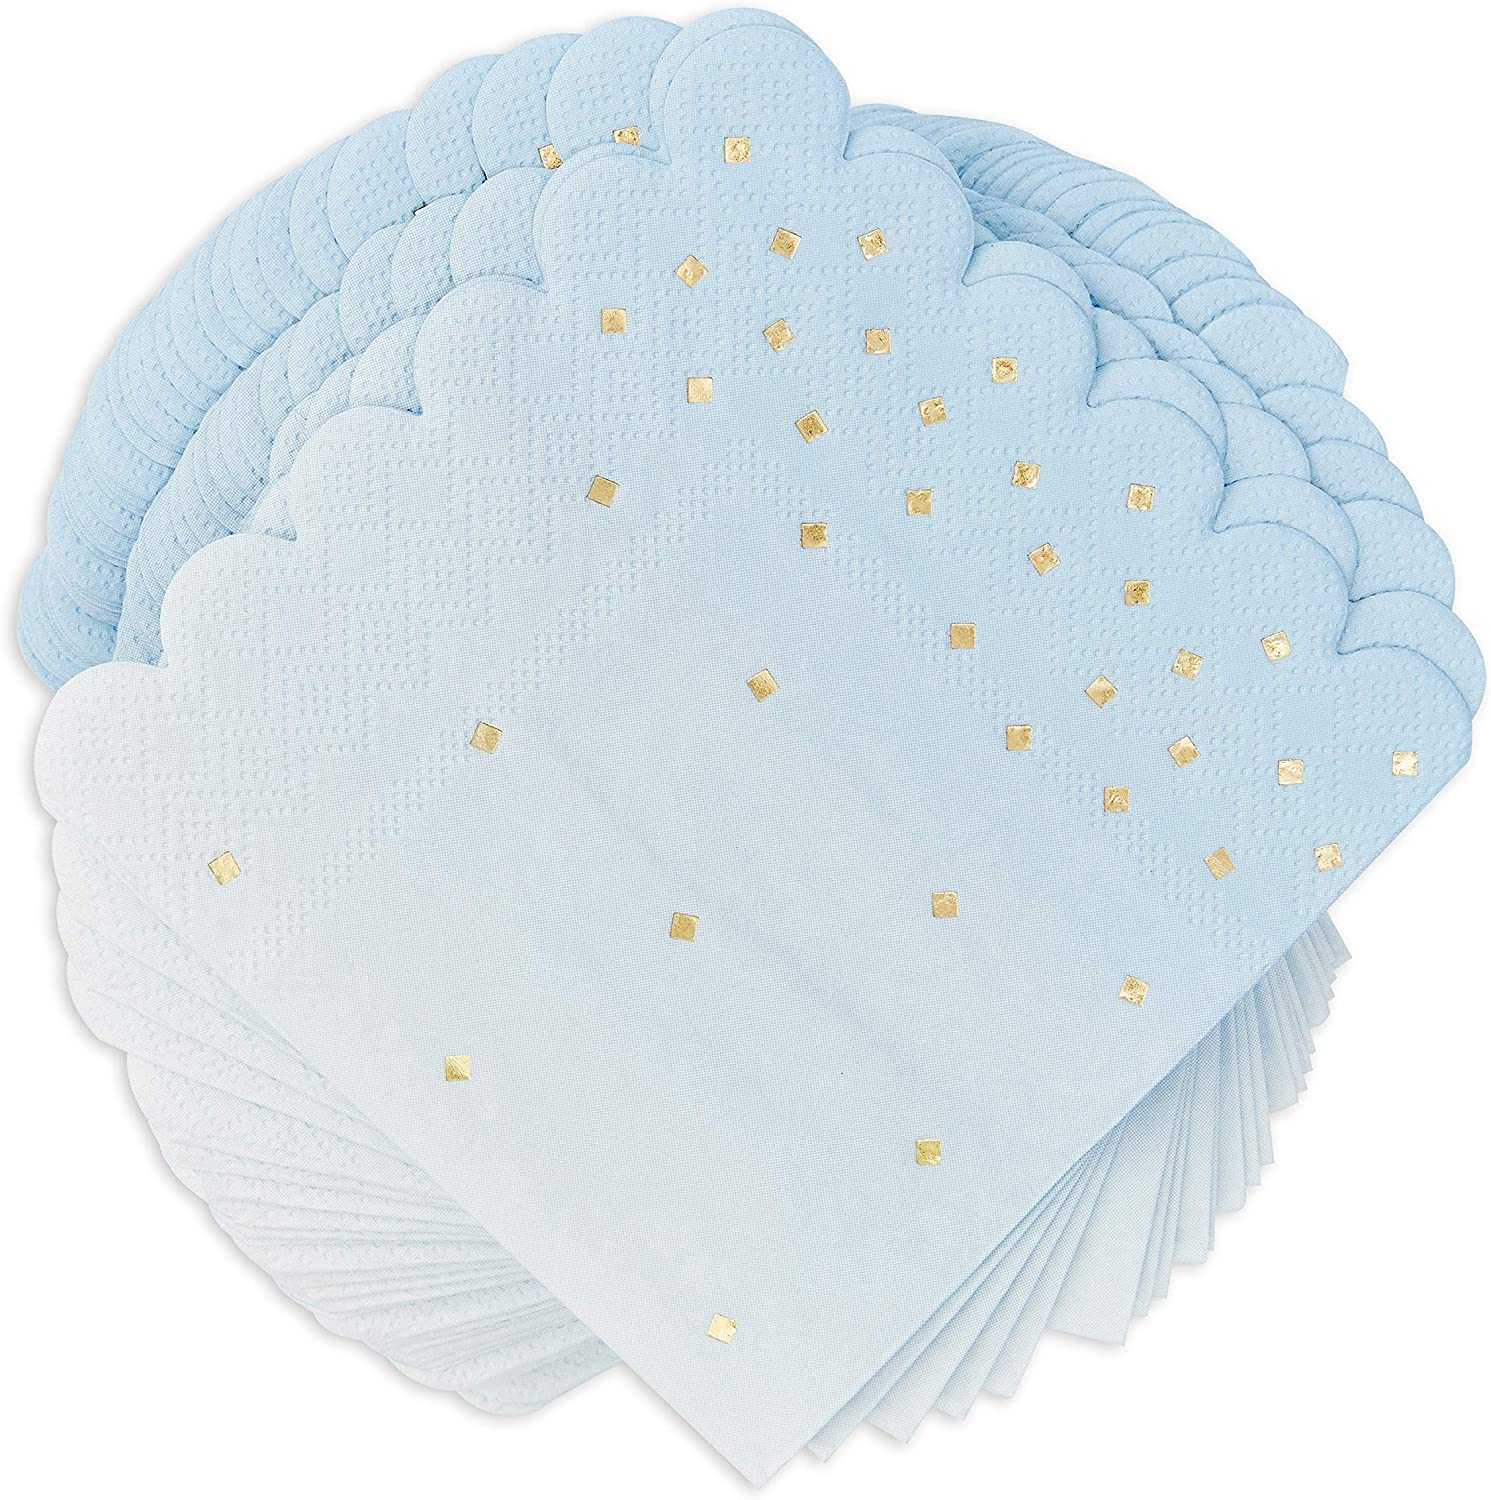 Ombre Cocktail Party Napkins, (5 x 5 in, Blue, 100-Pack)